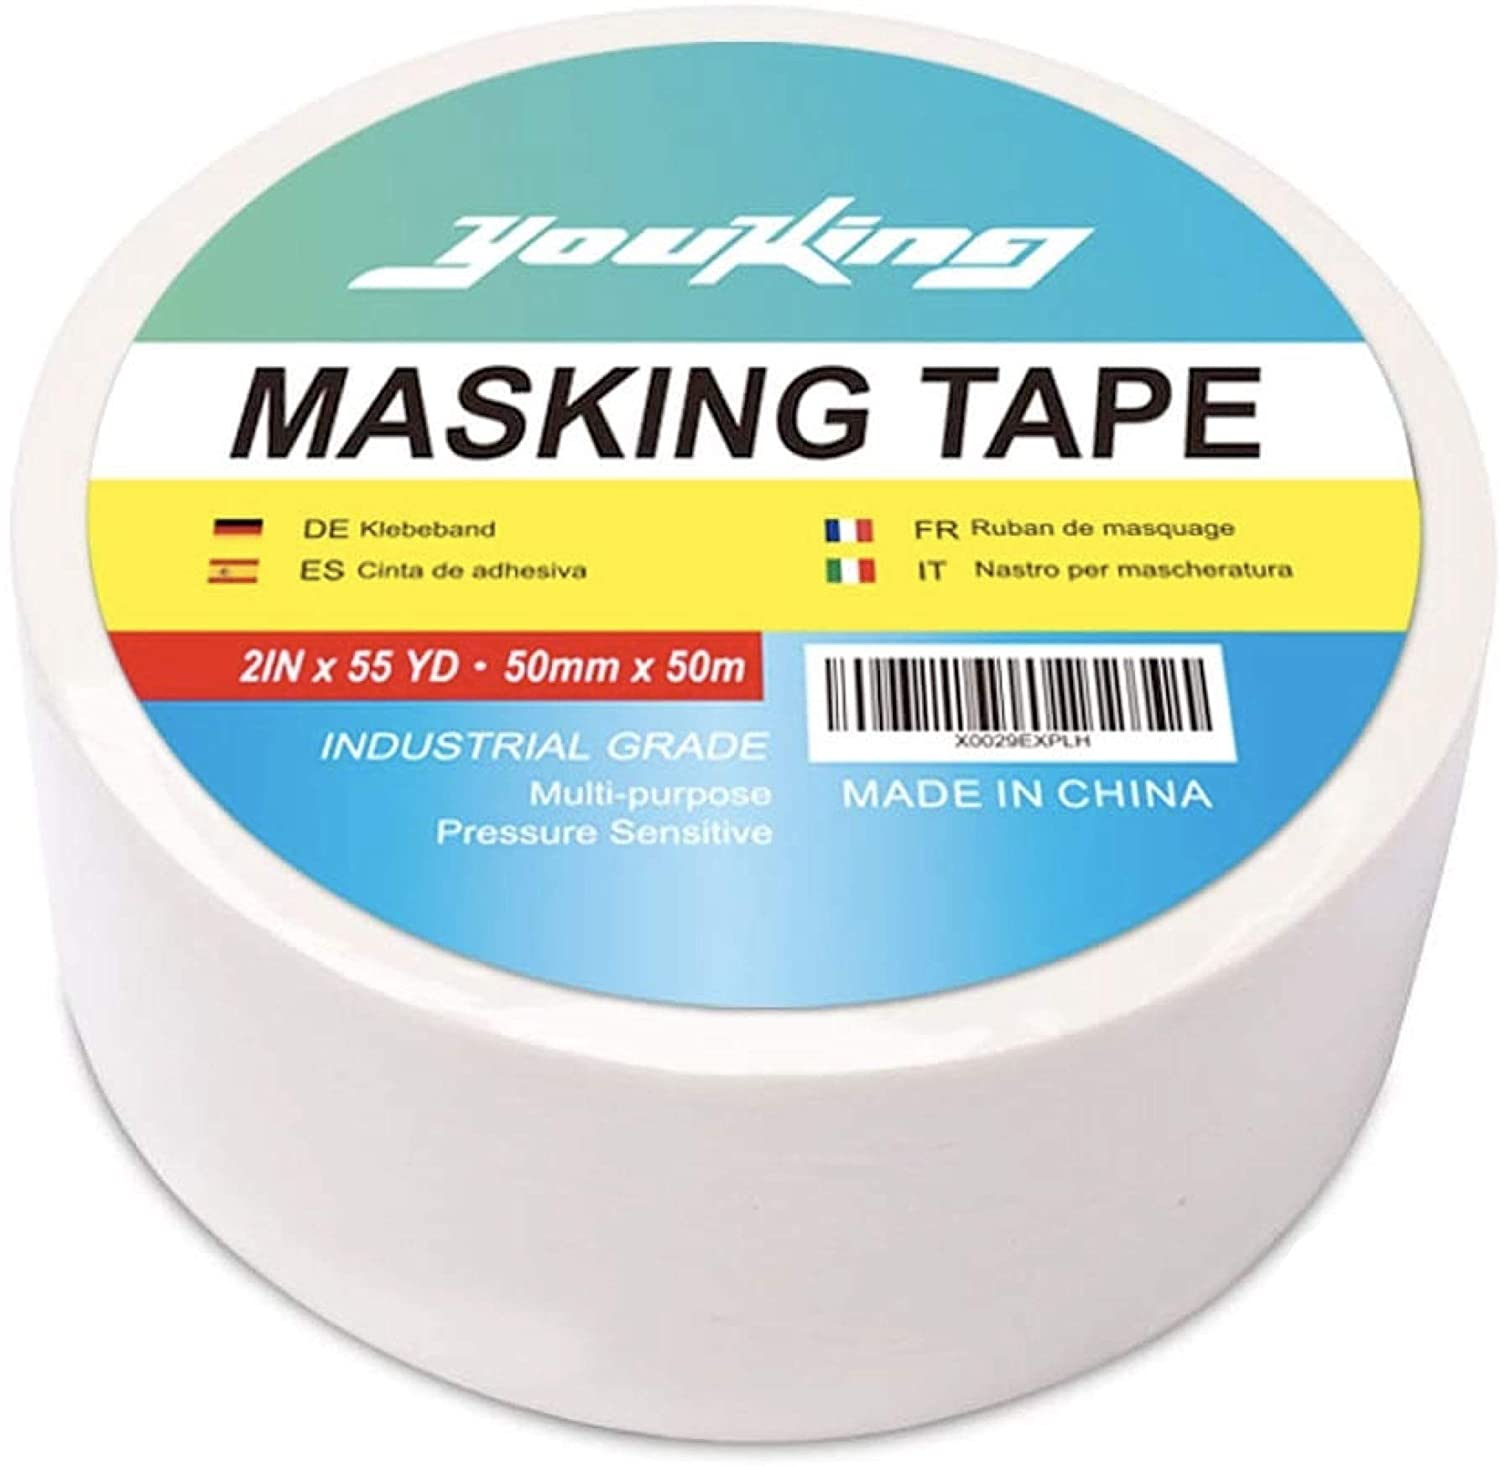 YOUKING Professional Masking Tape 1roll 2 x 55yard Multi-Use 2In X 55Yard Best for Home and Office Easy Tear Painter/'s Tape